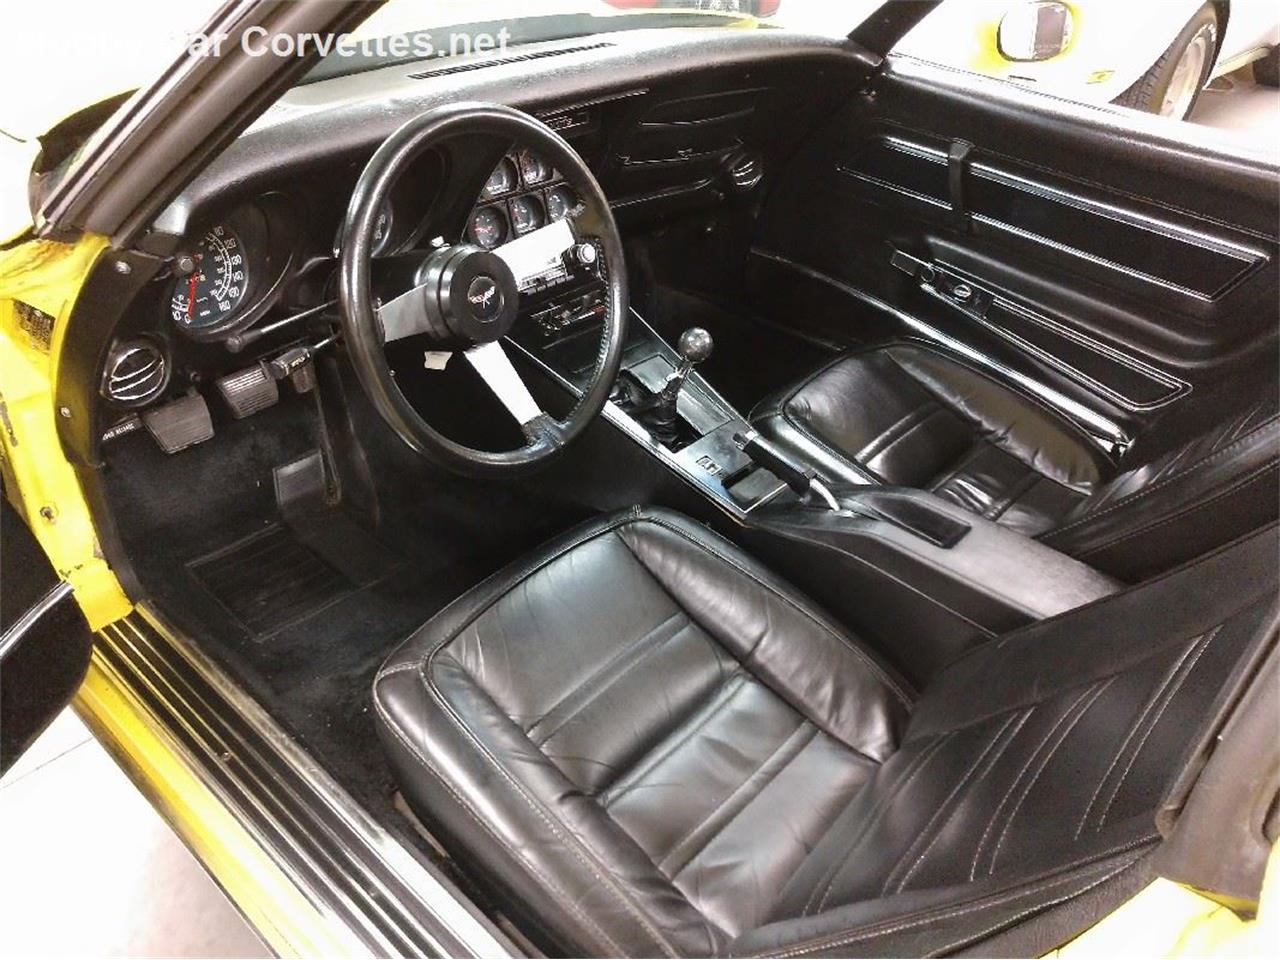 1977 Chevrolet Corvette (CC-1271385) for sale in martinsburg, Pennsylvania